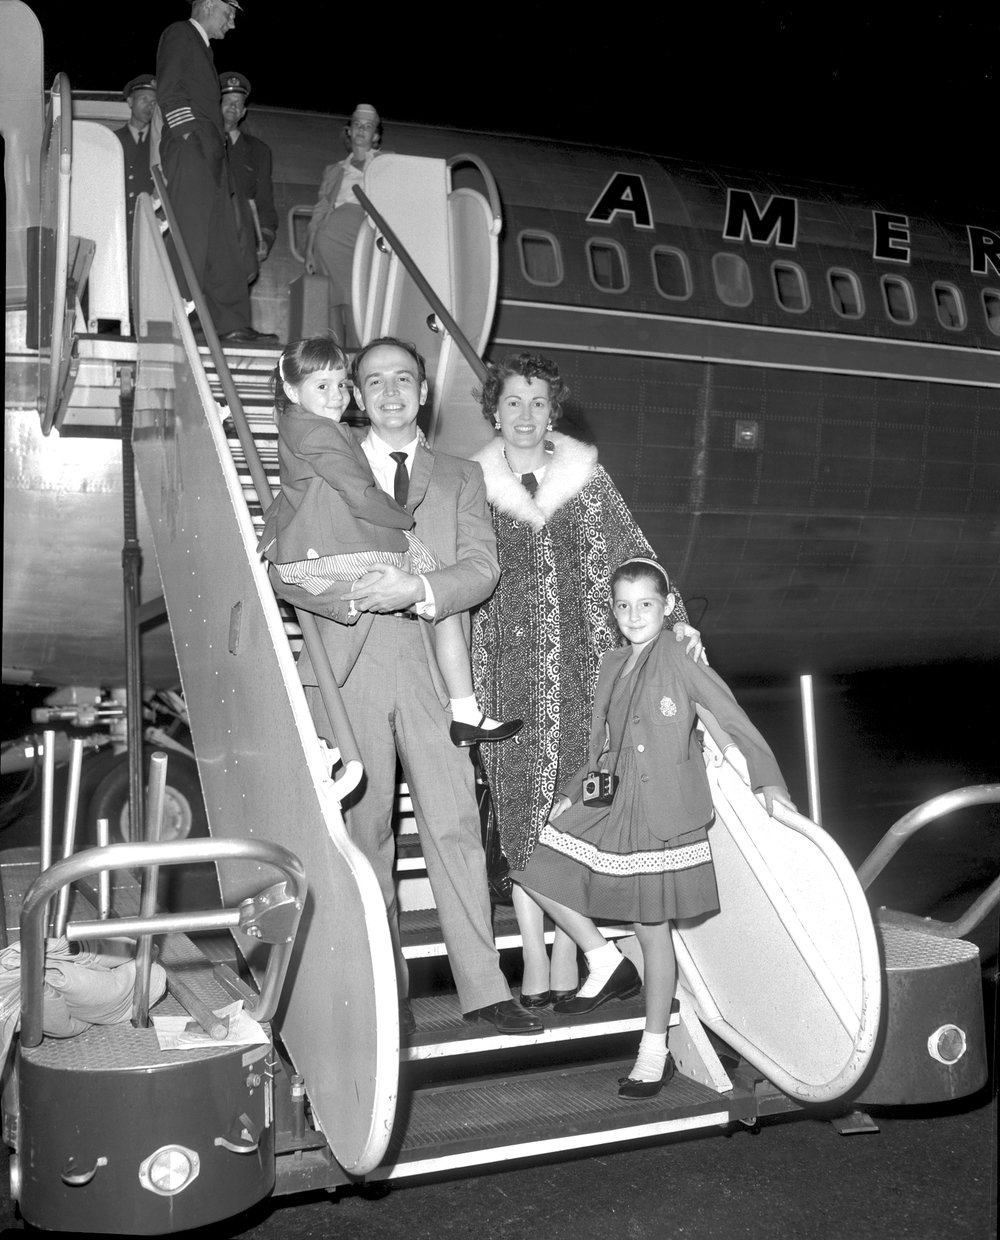 1959 Williams family's arrival, moving from NY to LA